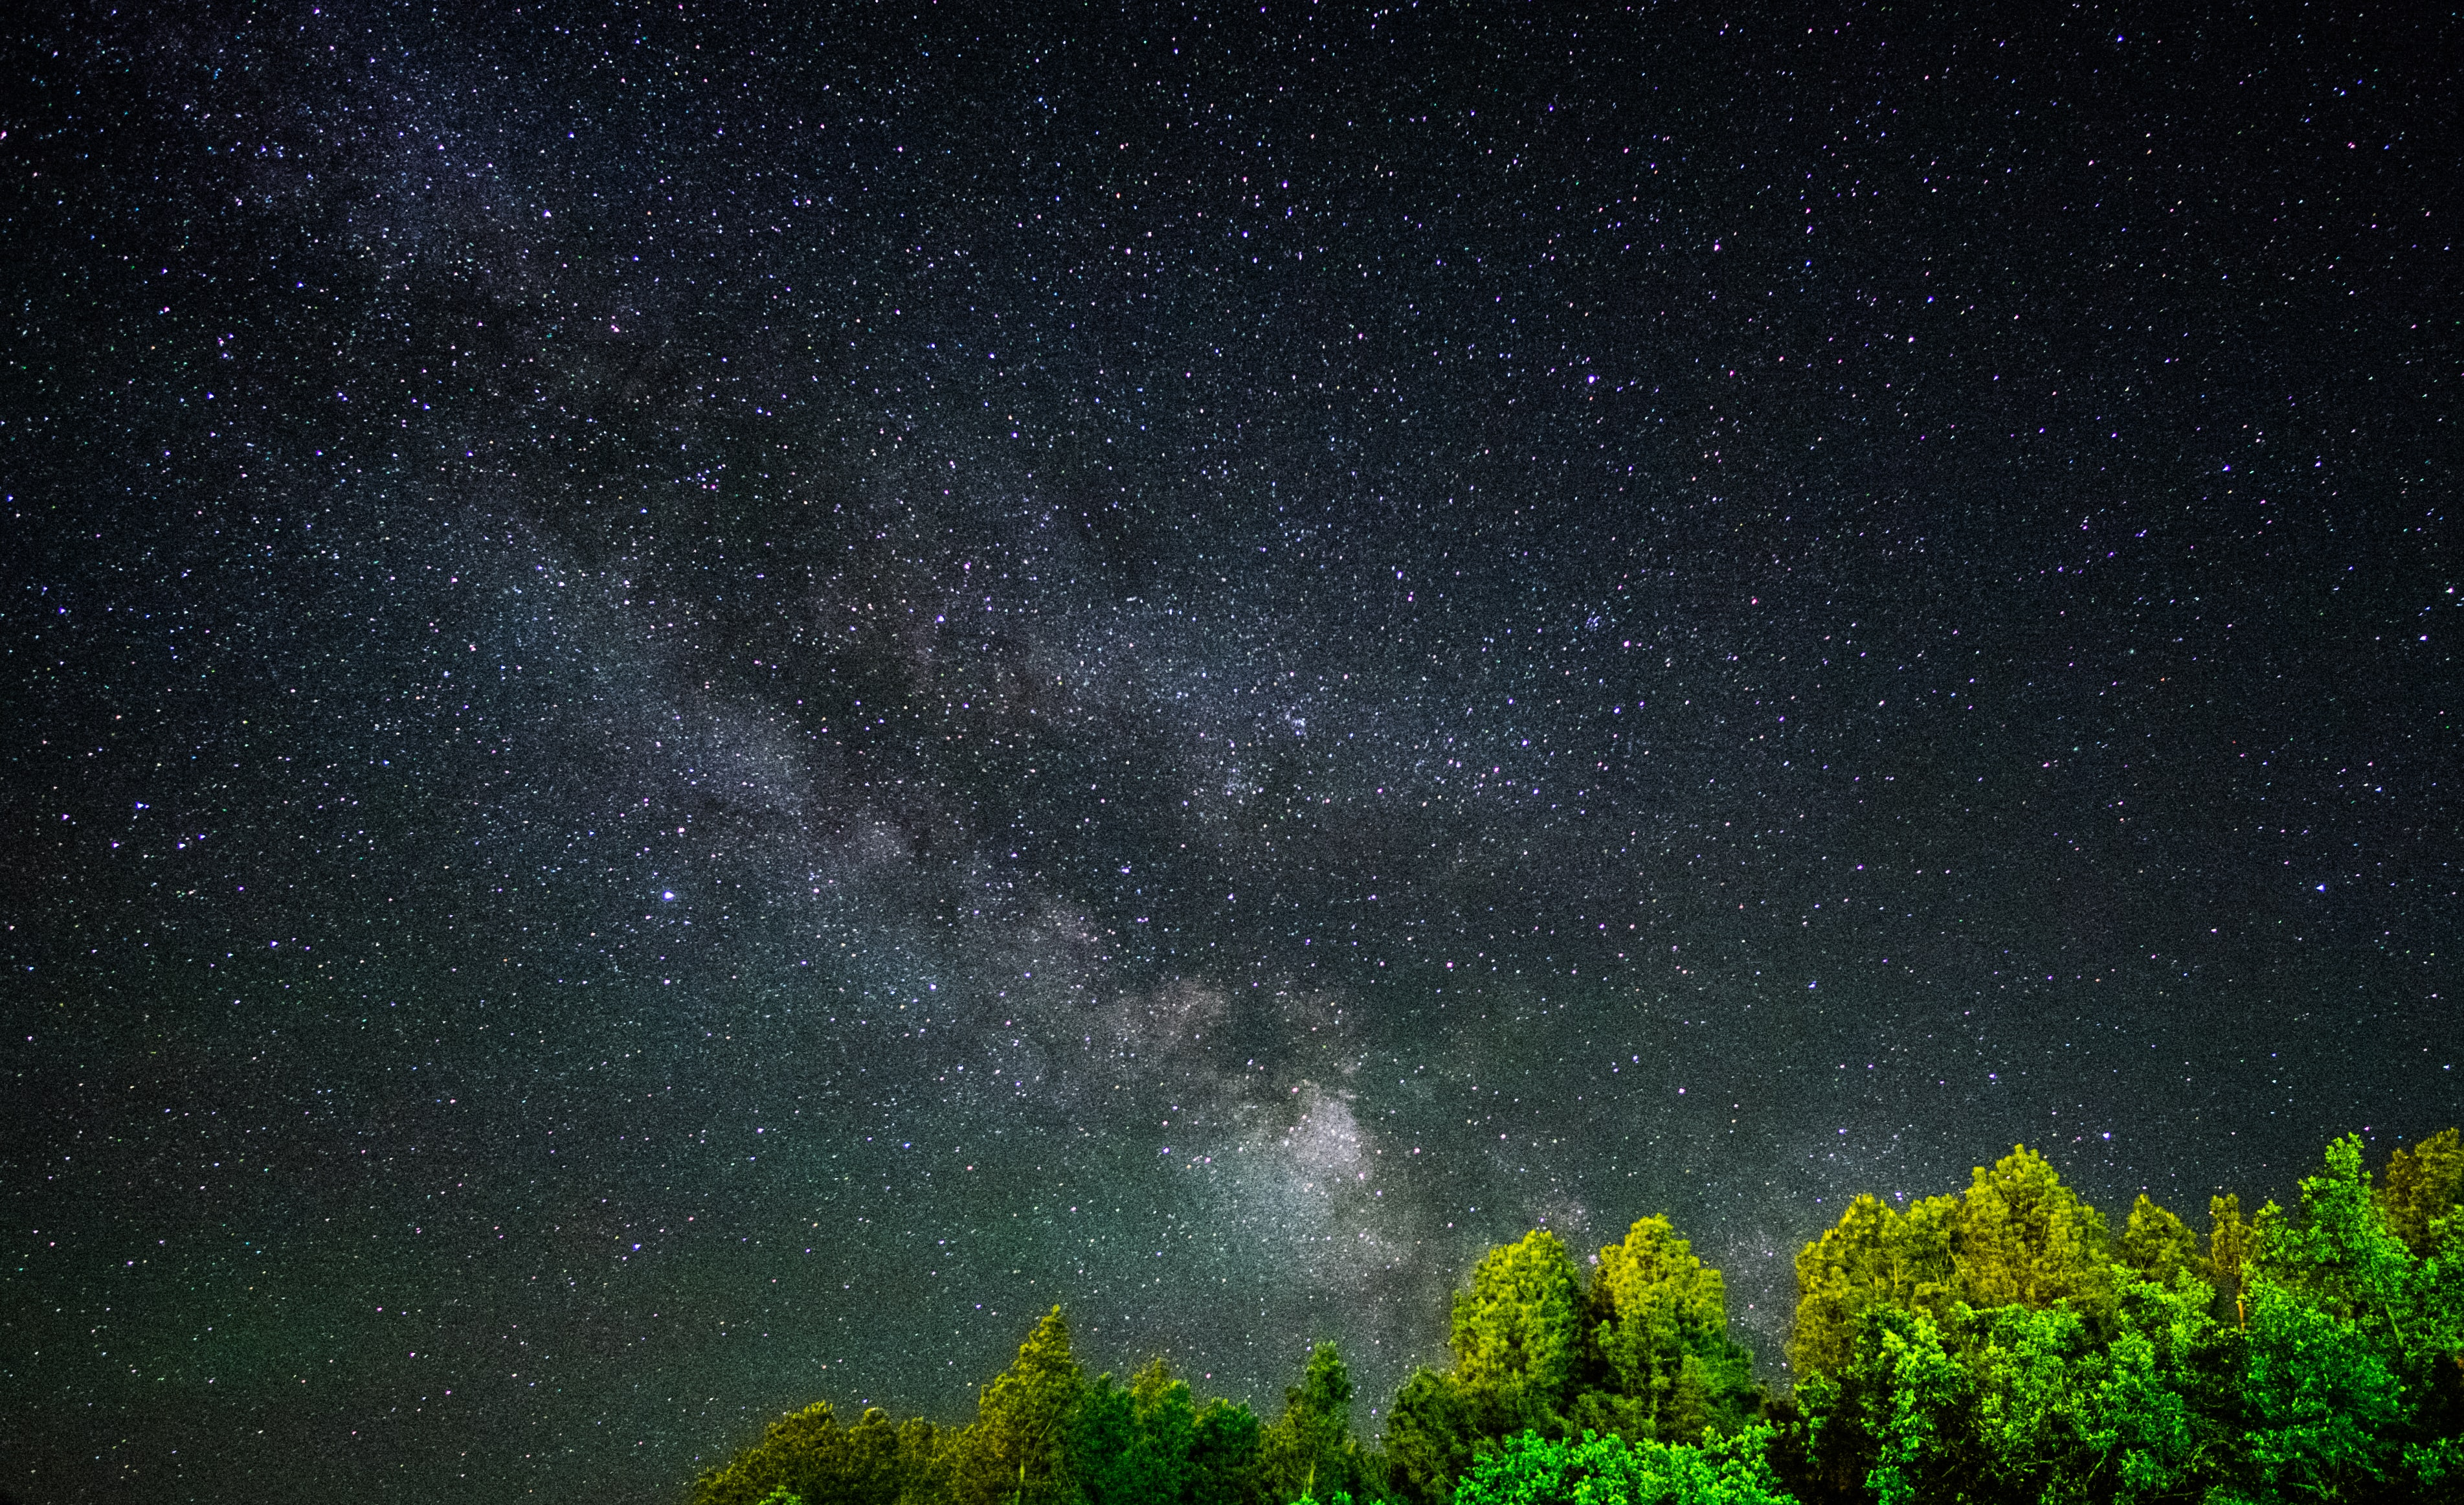 Milky Way Galaxy can be seen through tree leaves